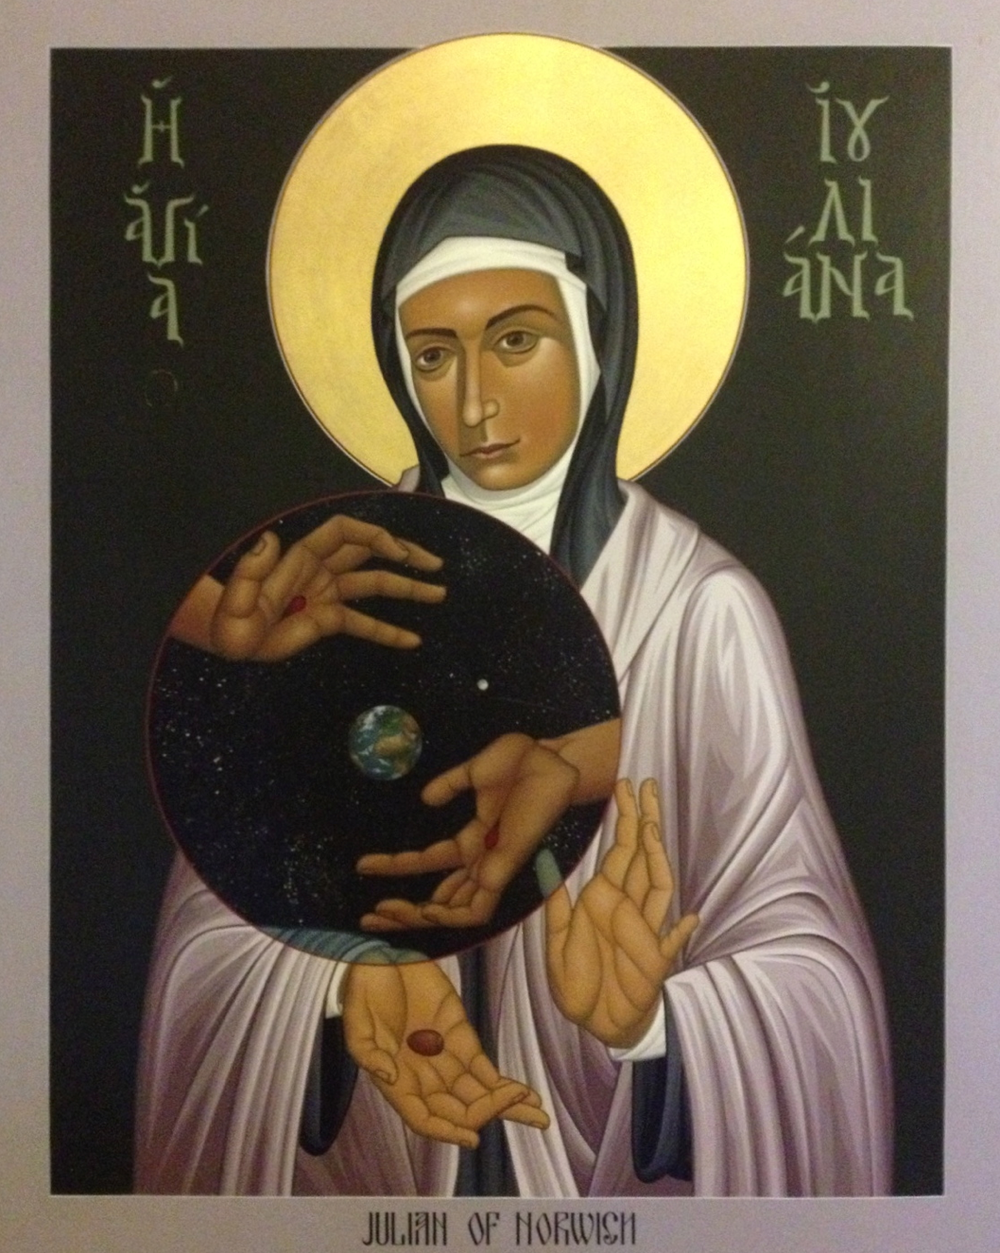 Julian of Norwich from England in the 1300s. God, and the whole world, can be found within the small, humble hazelnut.